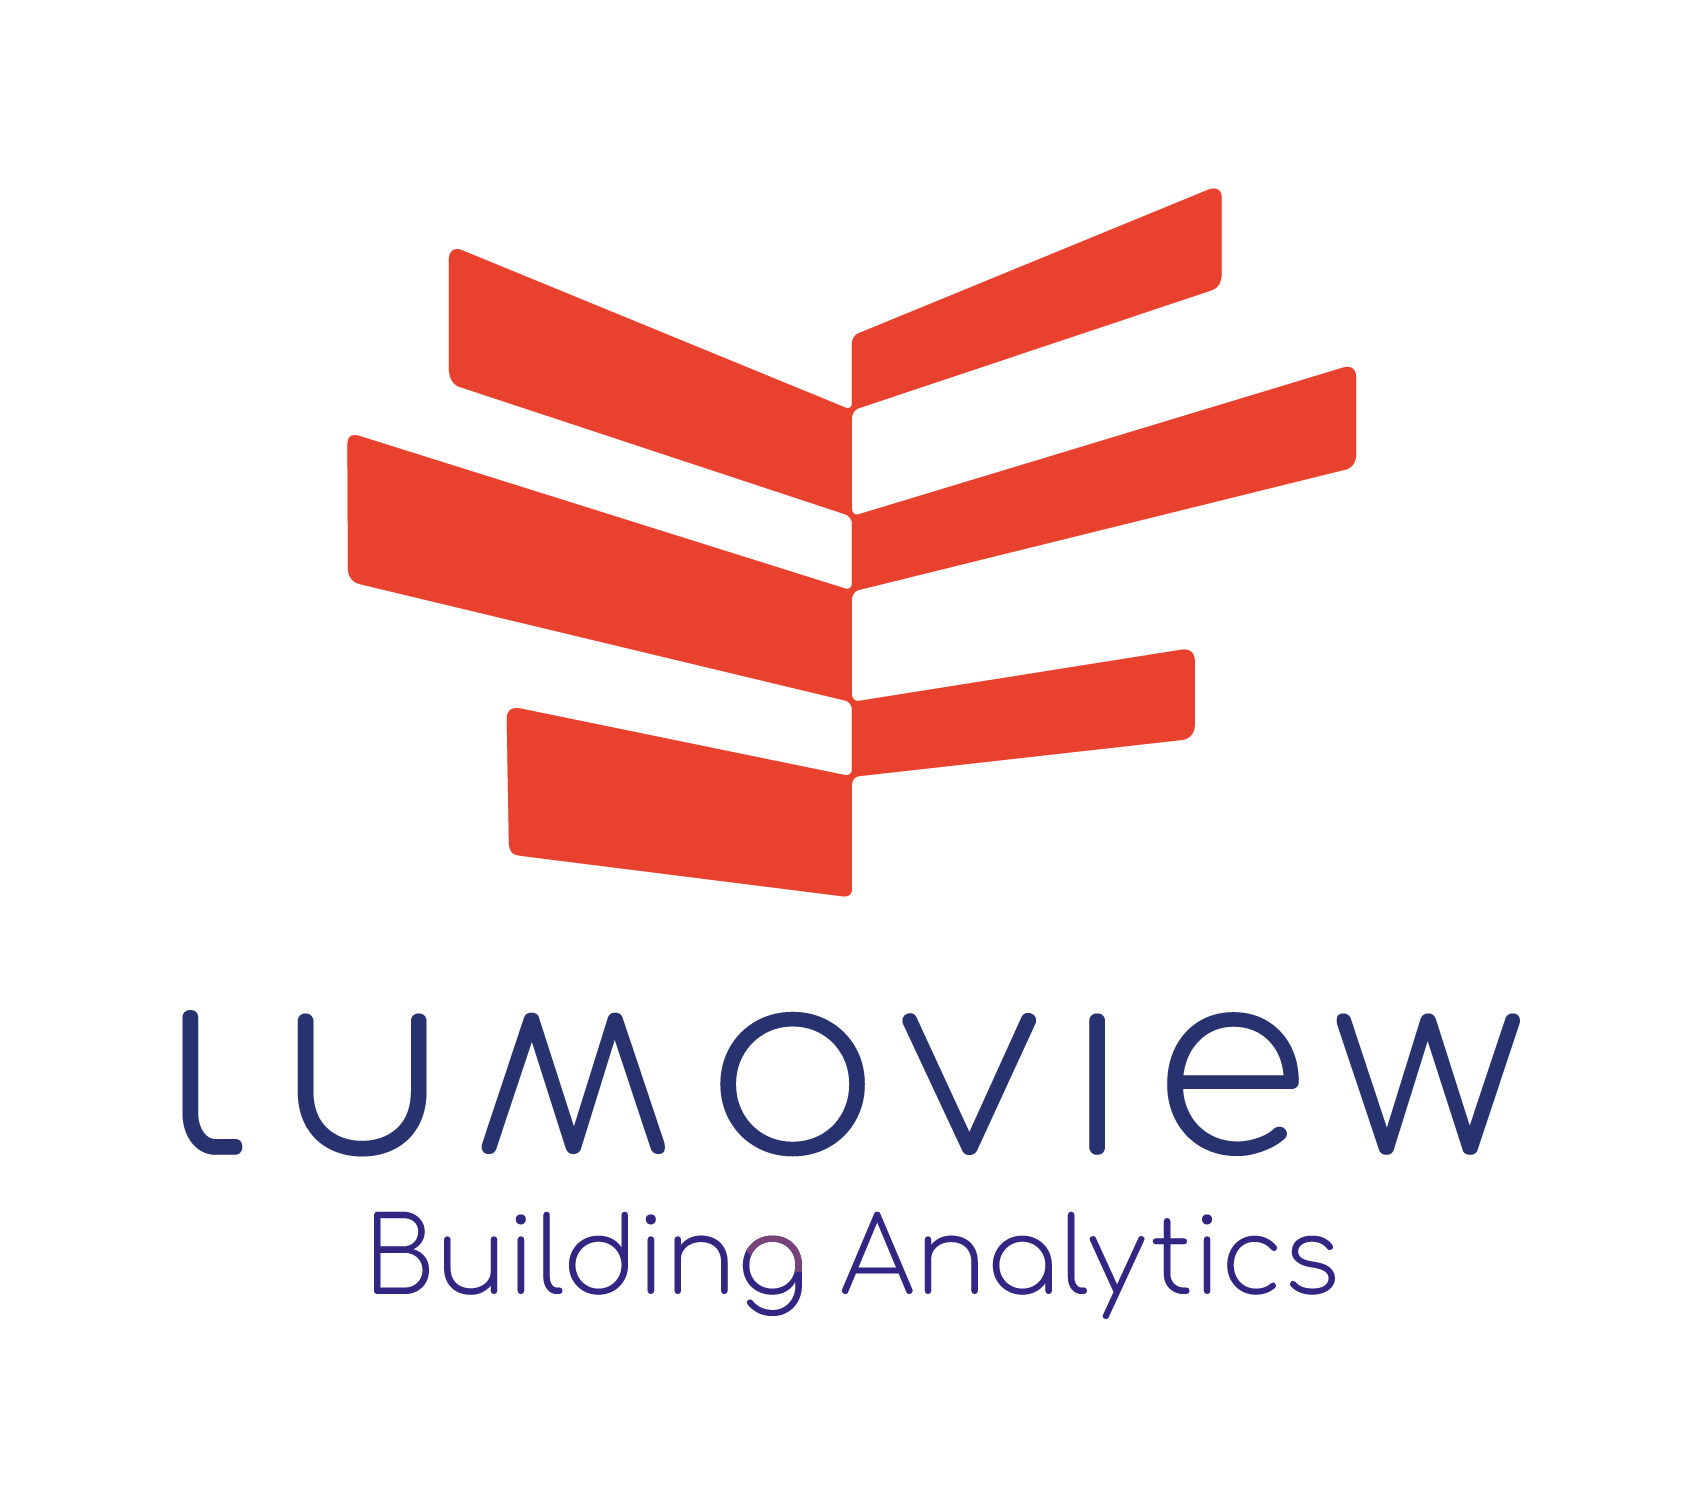 1_Lumoview-logo-full-withSL-color